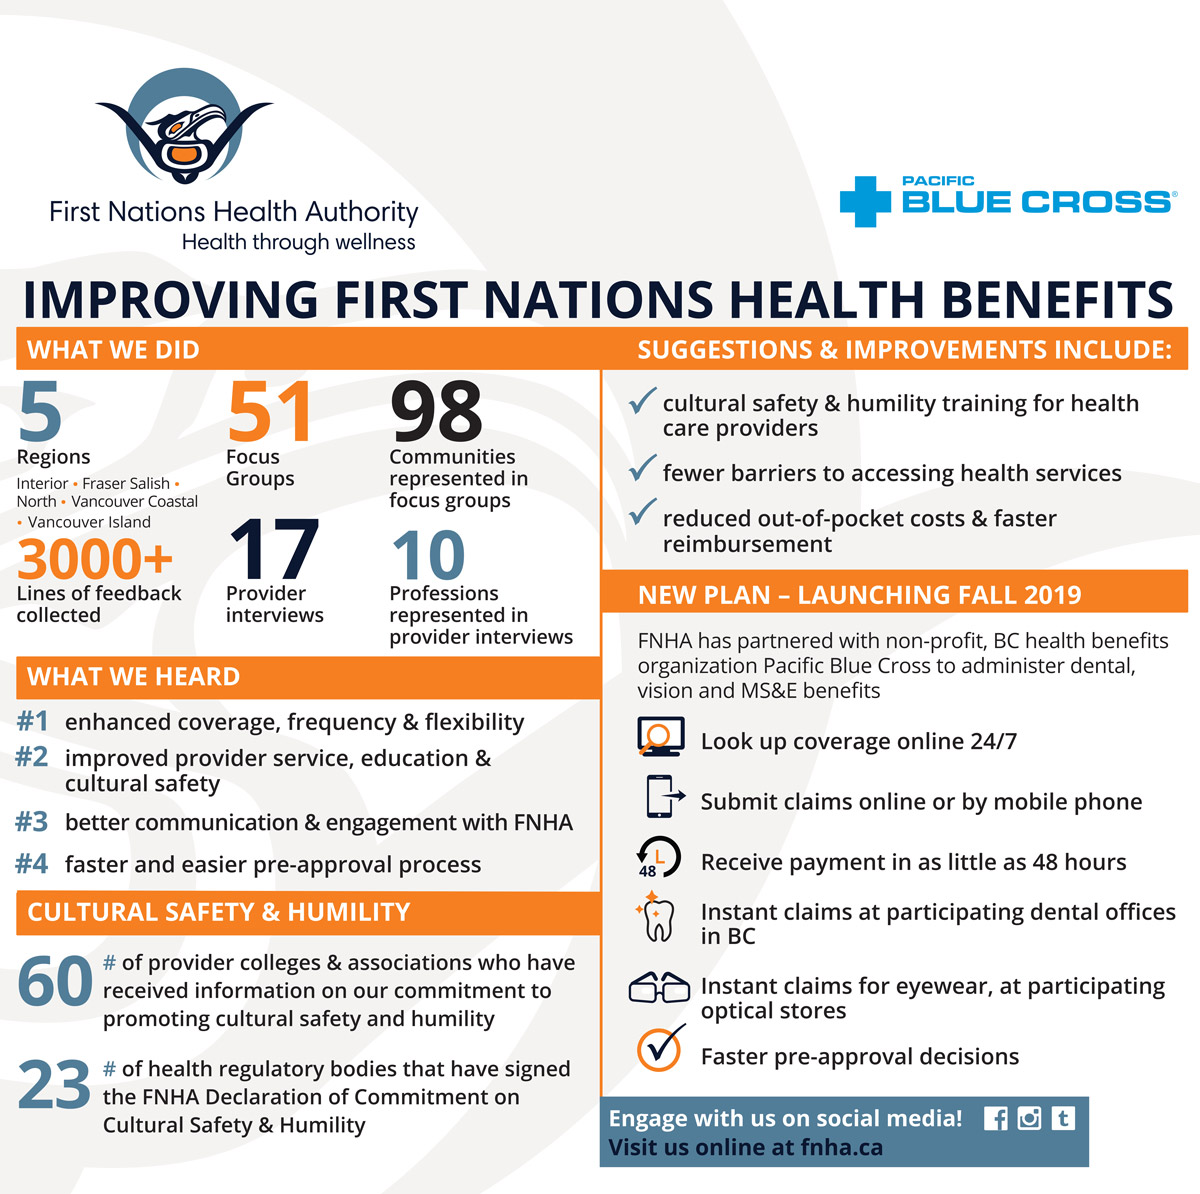 FNHA-PBC-Improving-First-Nations-Health-Benefits-Infosheet.jpg